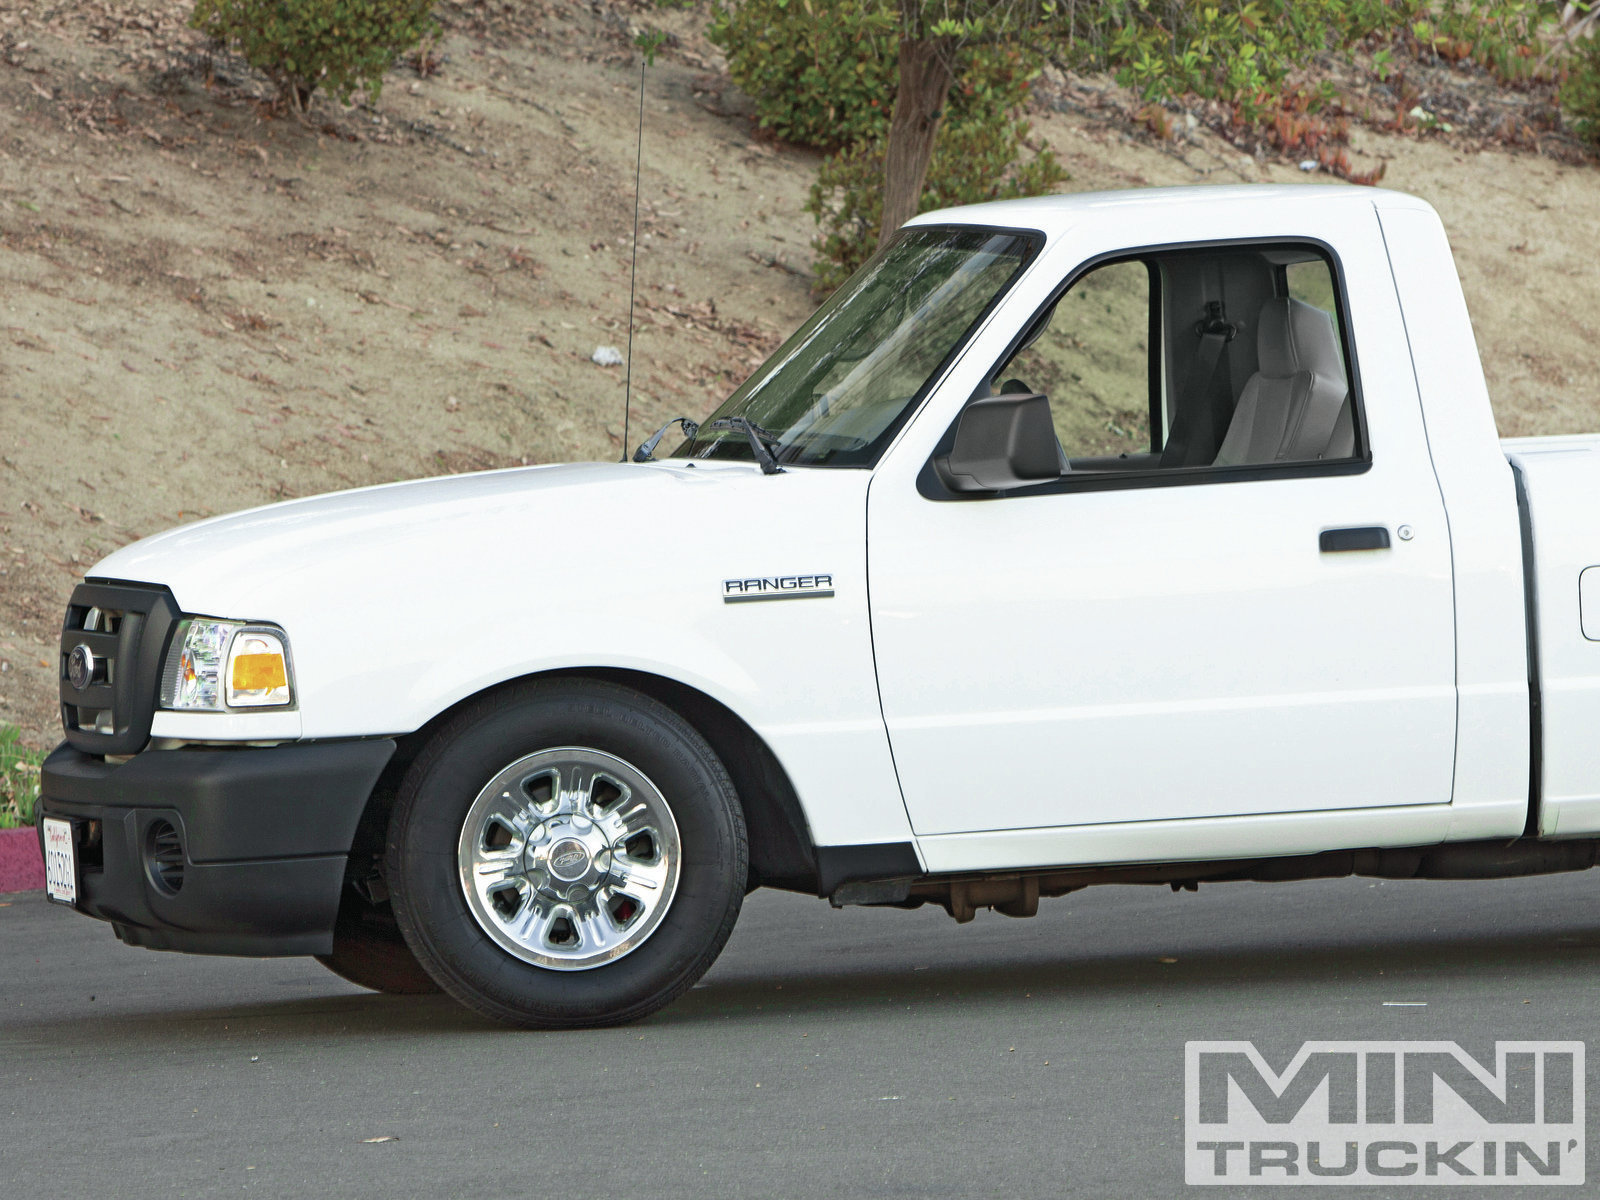 2009 Ford Ranger lowered